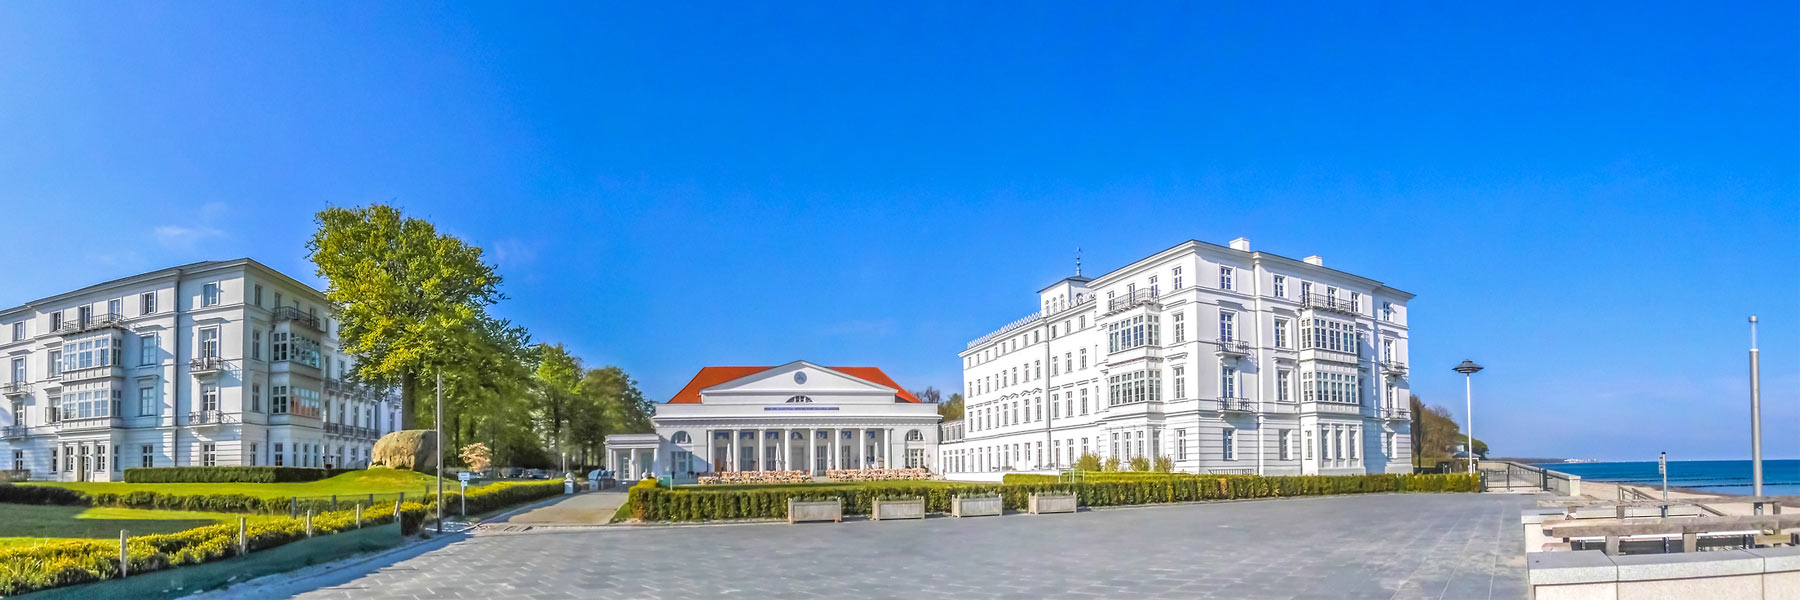 Grand Hotel - Seeheilbad Heiligendamm